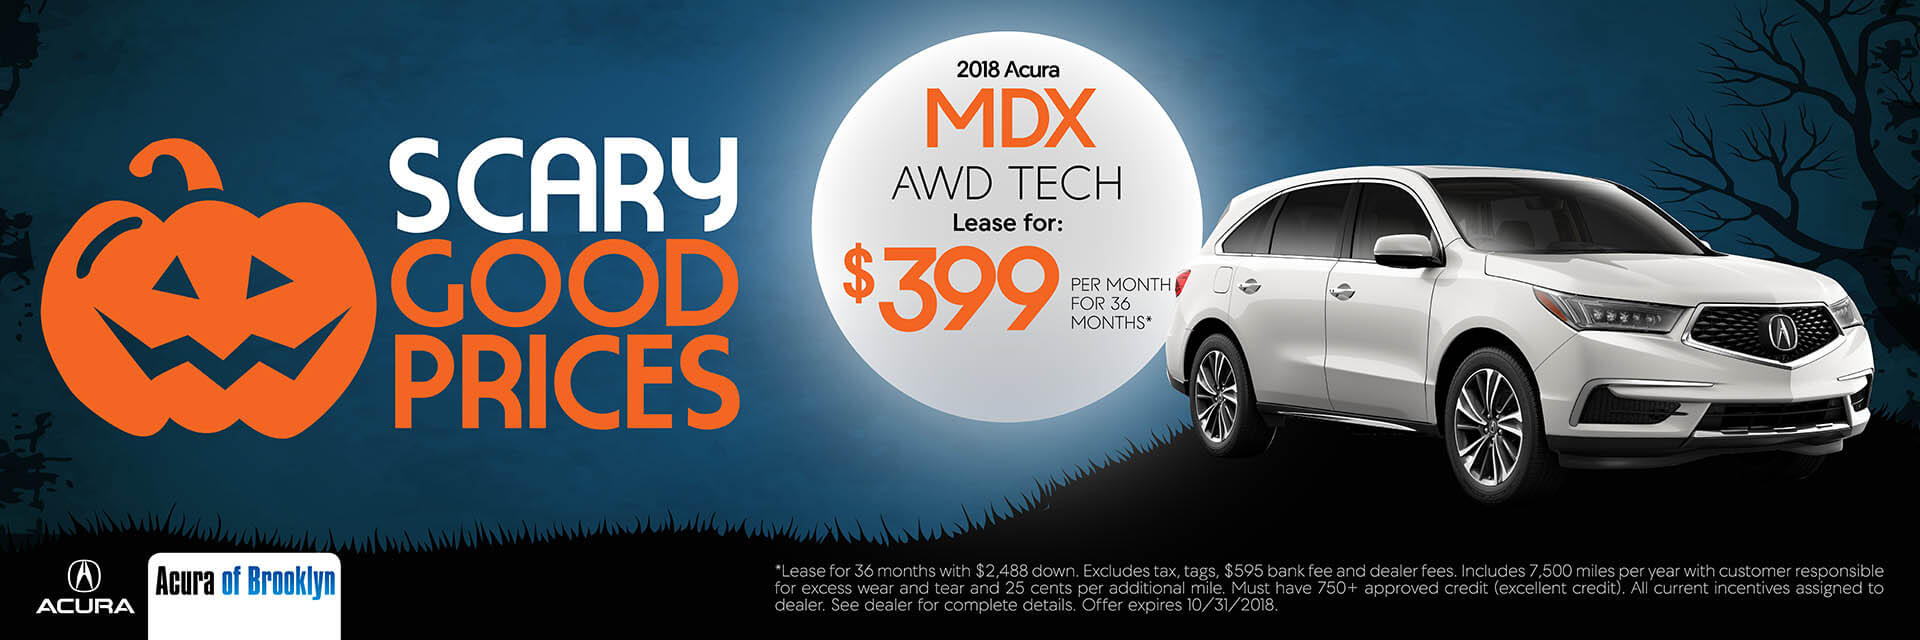 FullService Acura Dealership In Brooklyn NY Acura Of Brooklyn - Acura dealers long island